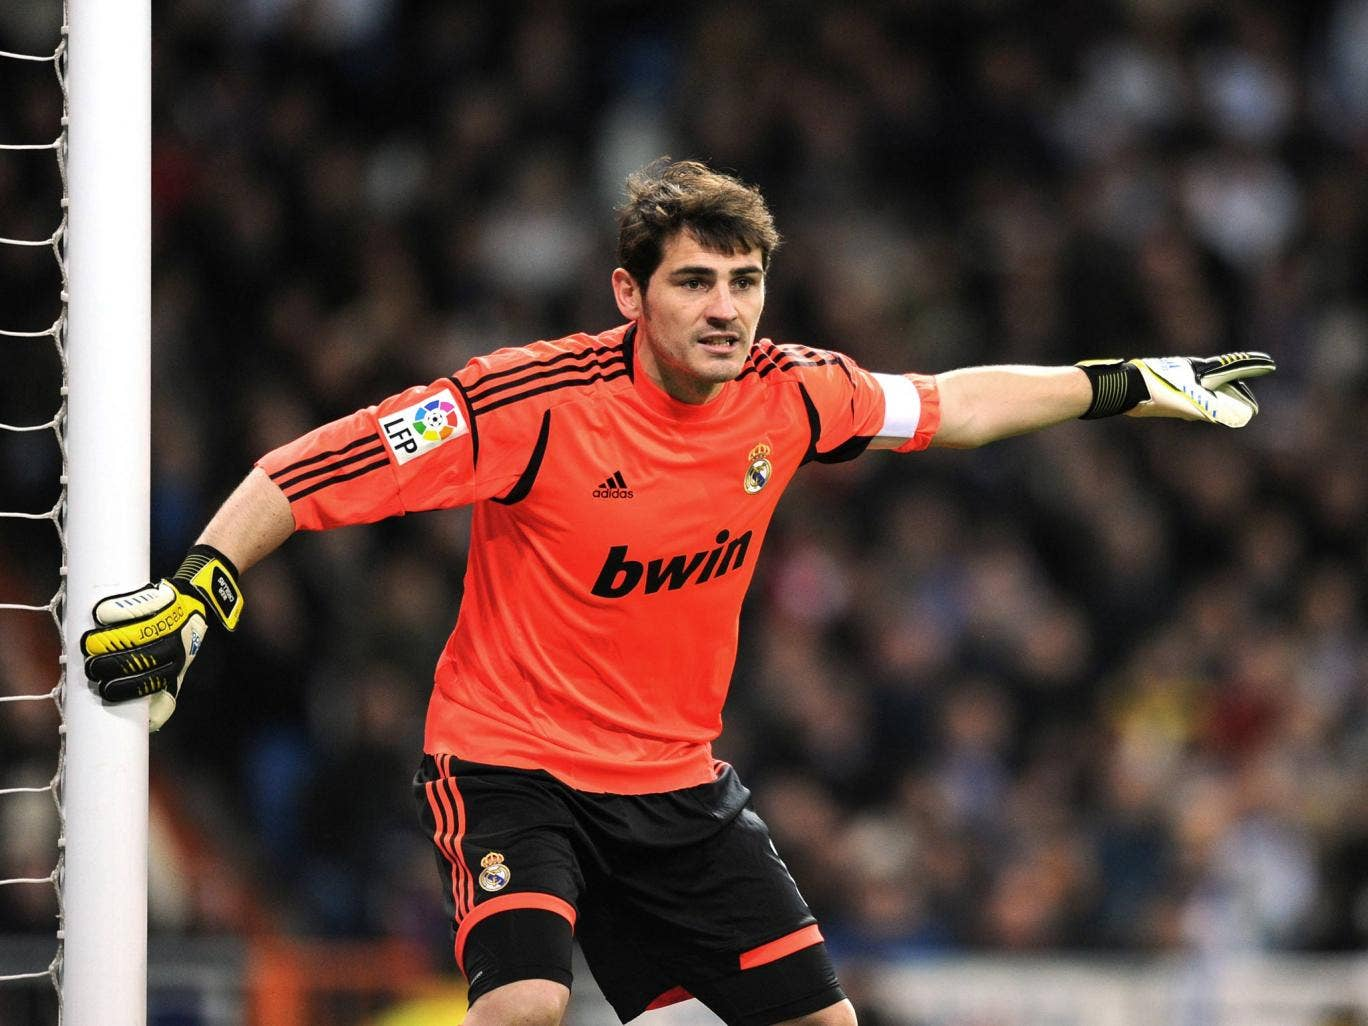 <b>Iker Casillas</b><br/> There is a chance that Iker Casillas could be available, however this particular deal will be fraught with ifs and maybes. The World Cup winner has fallen out with Jose Mourinho and there are suggestions he could be lured away fr